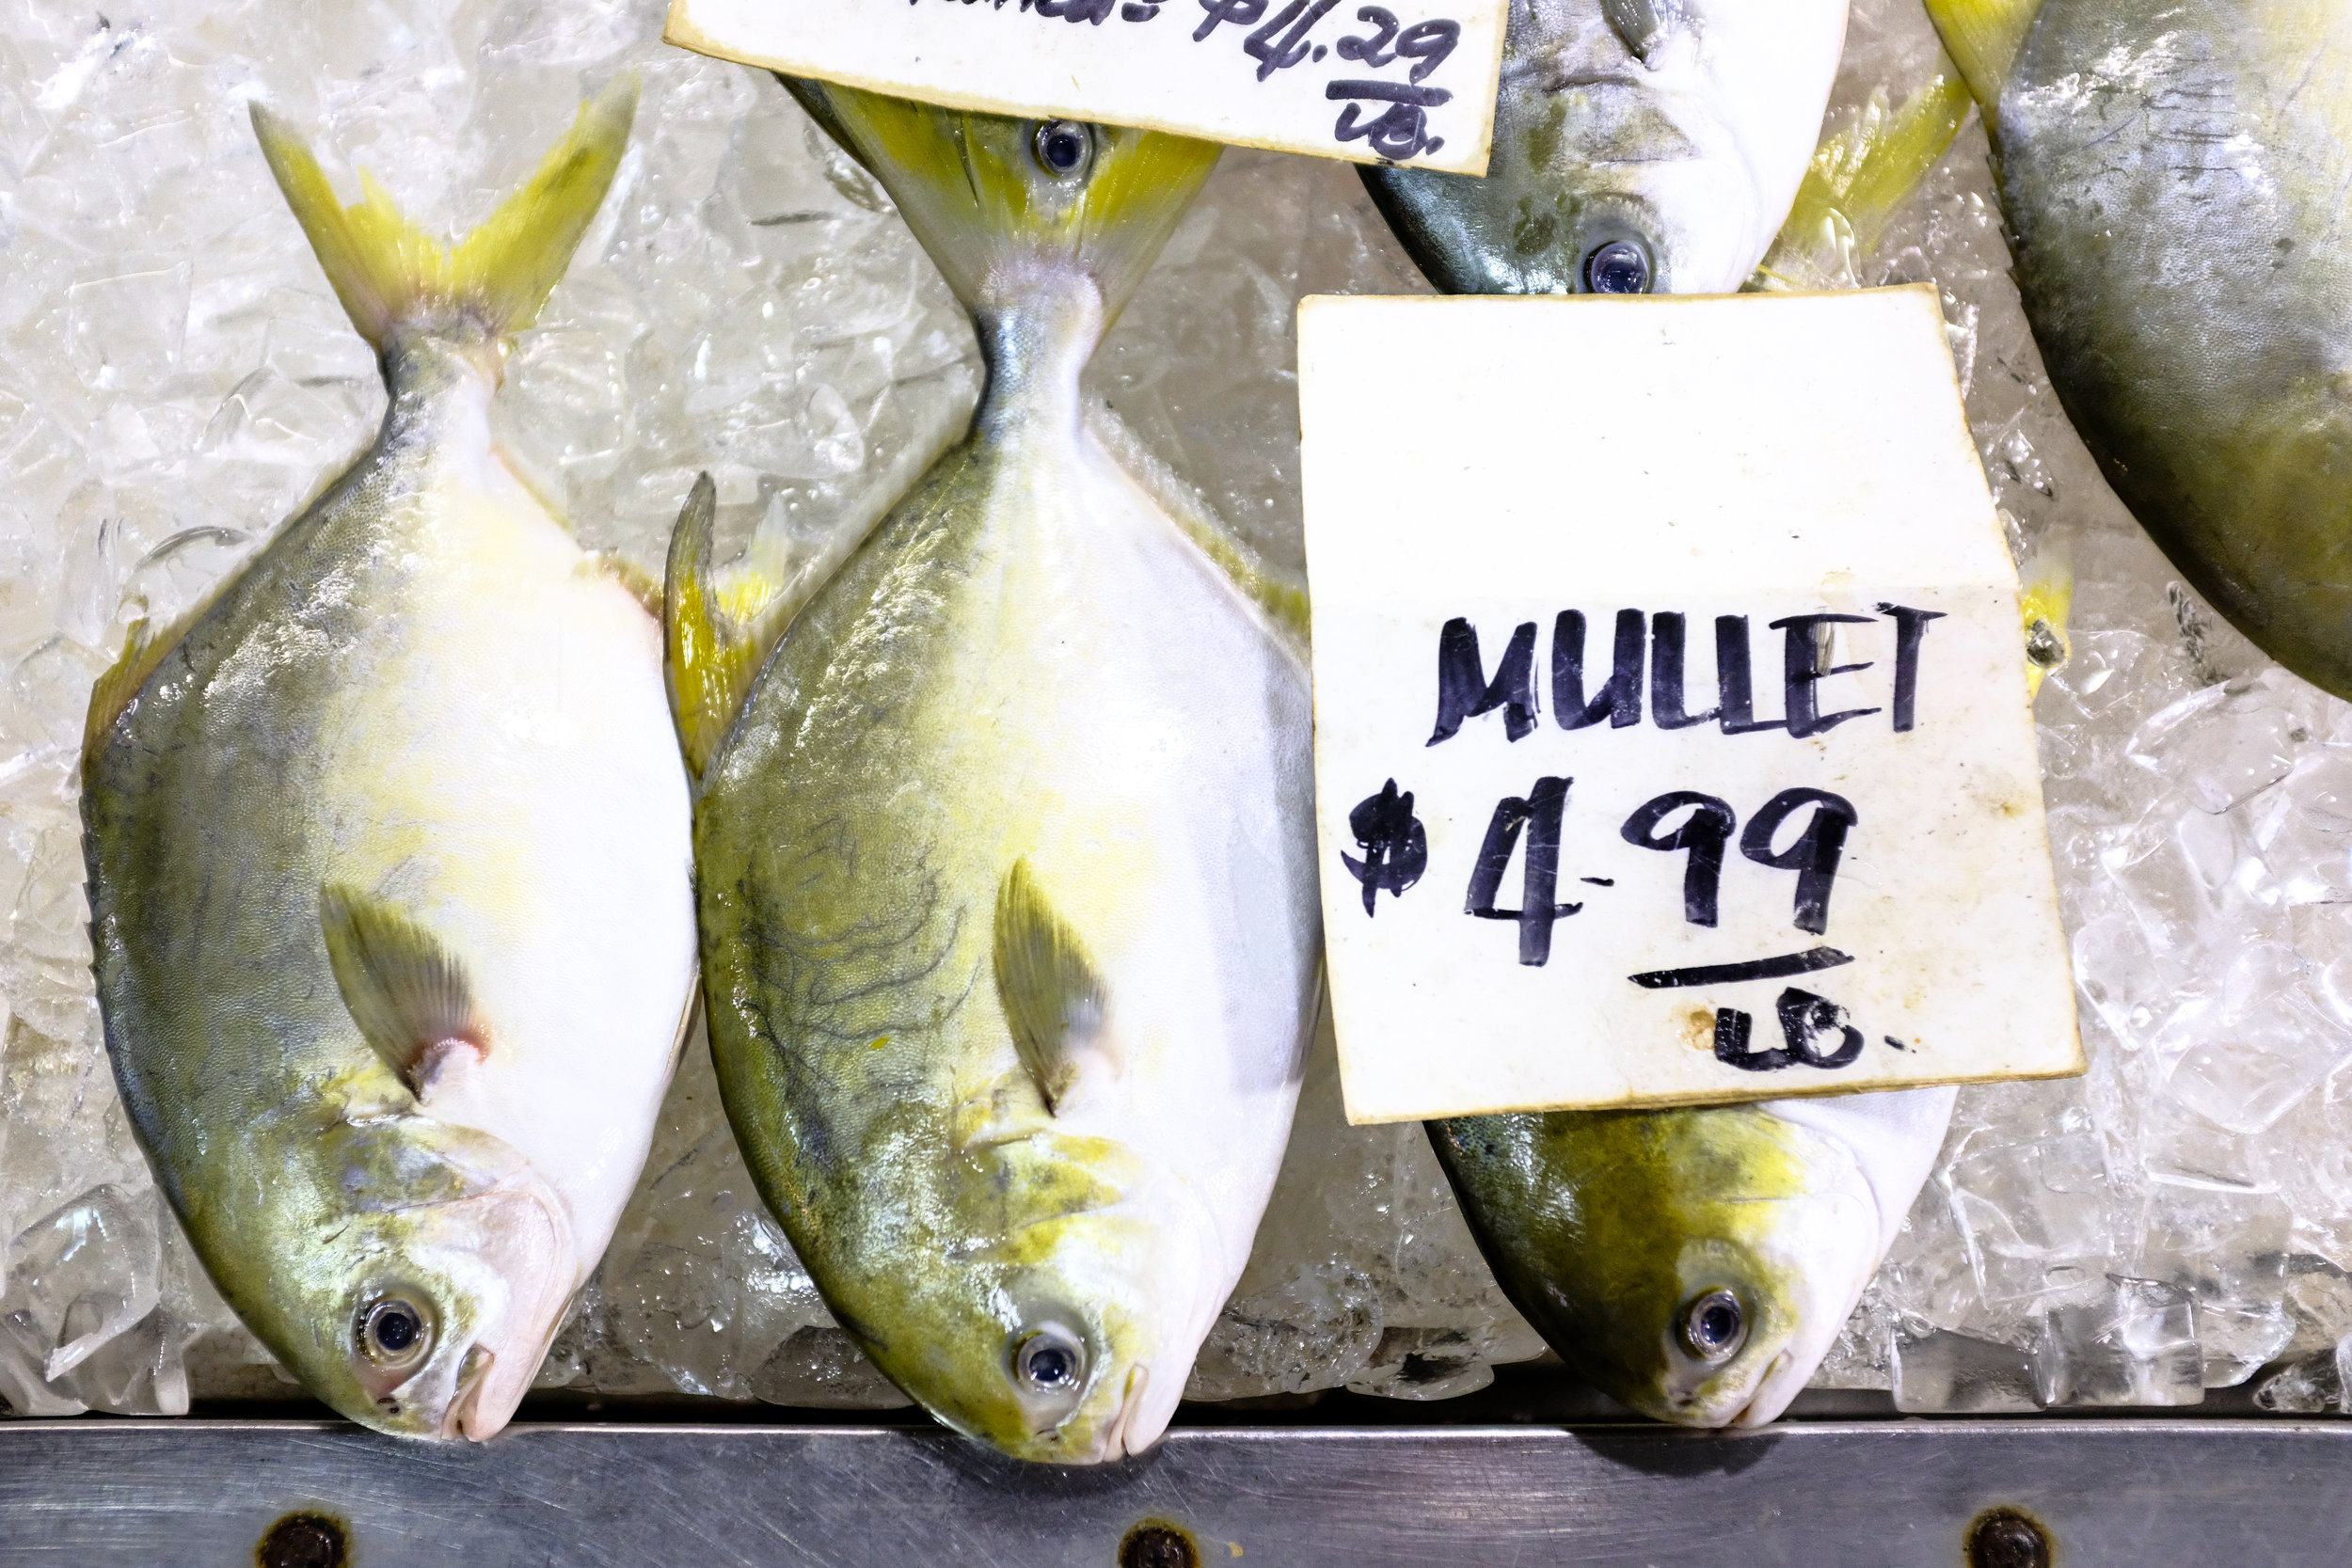 Mullet at the Chinatown Market